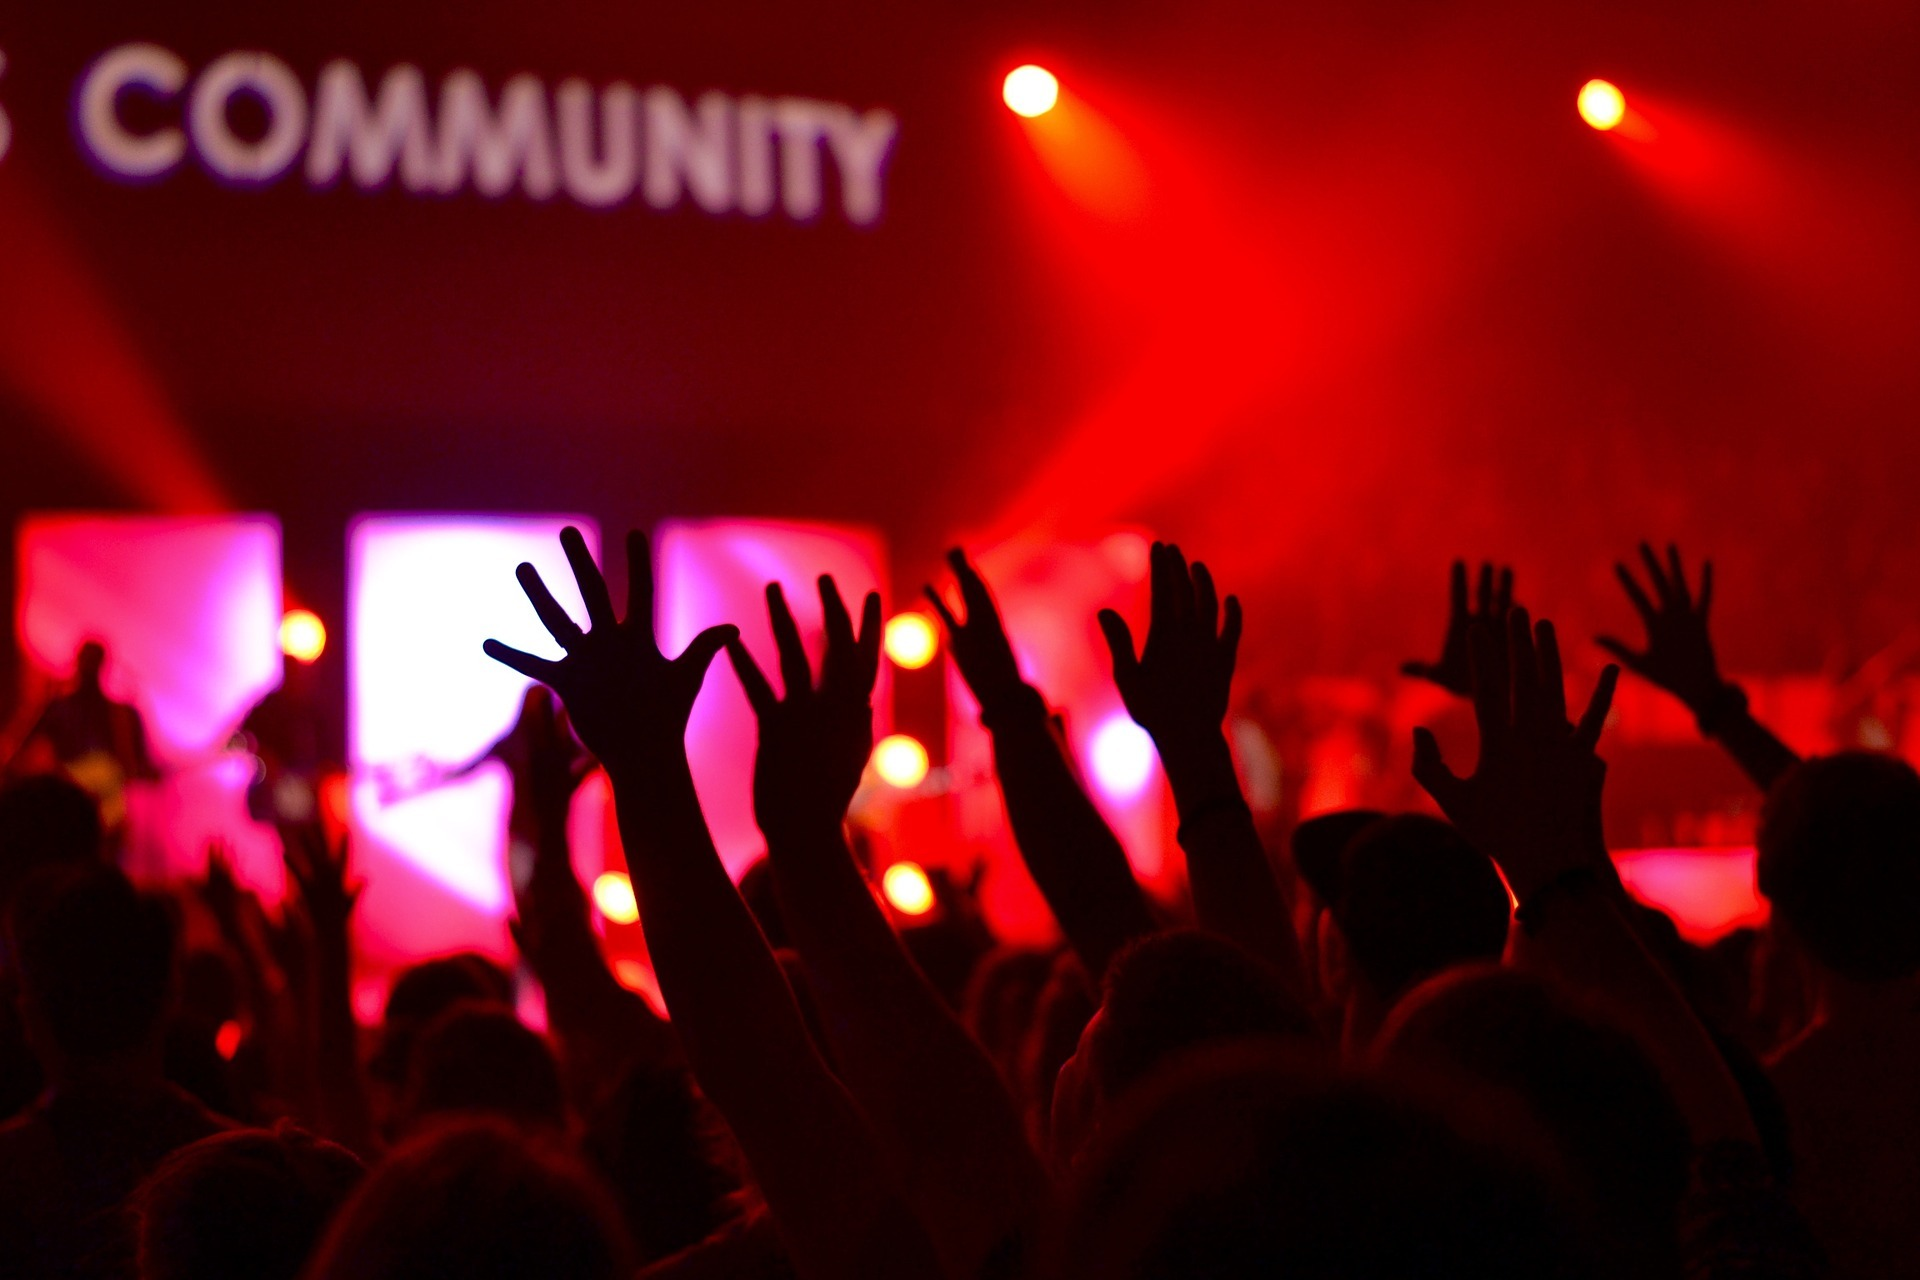 audience-with-community-sign.jpg?mtime=20170921131522#asset:107